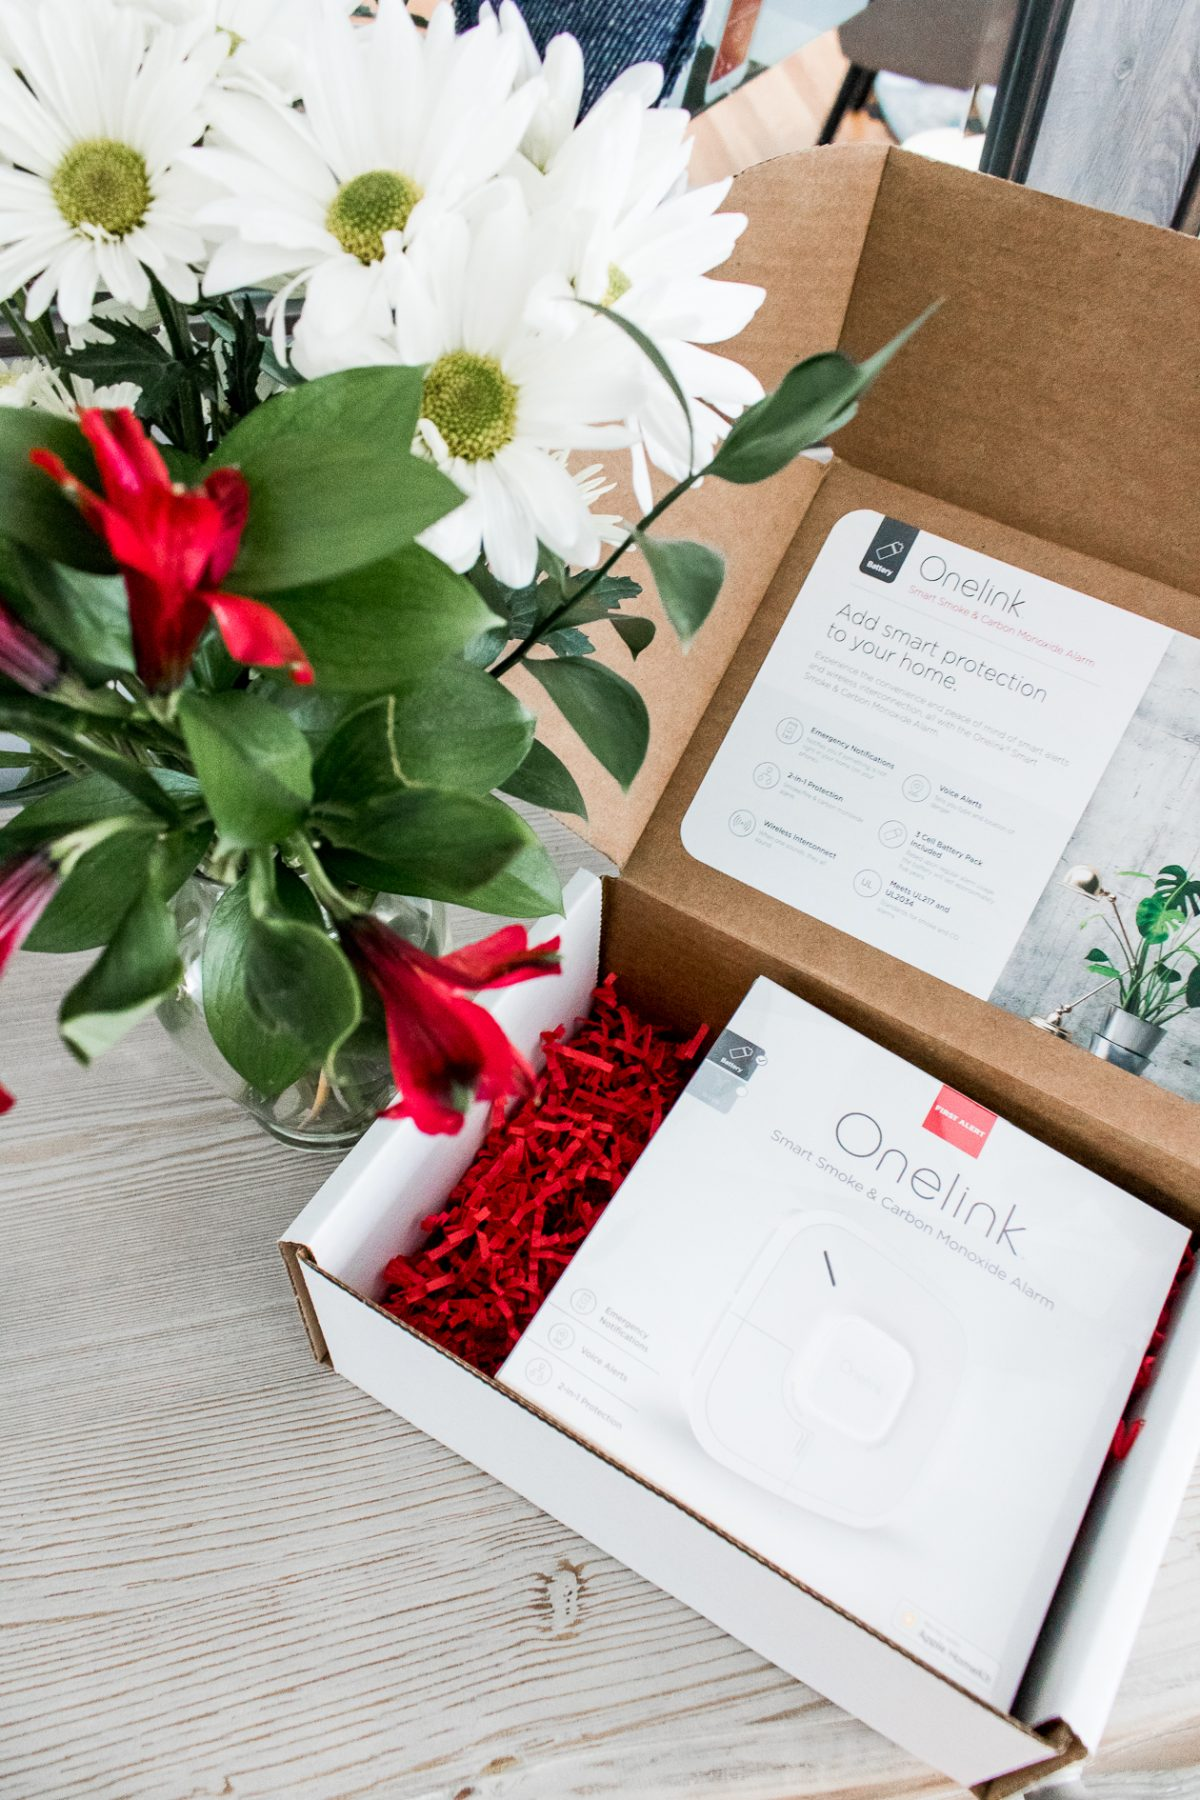 Overhead photo of Flowers and Onelink Smart Smoke & Carbon Monoxide Alarm in Box - How to Keep Your Family Safe with Onelink Smart Smoke & Carbon Monoxide Alarm